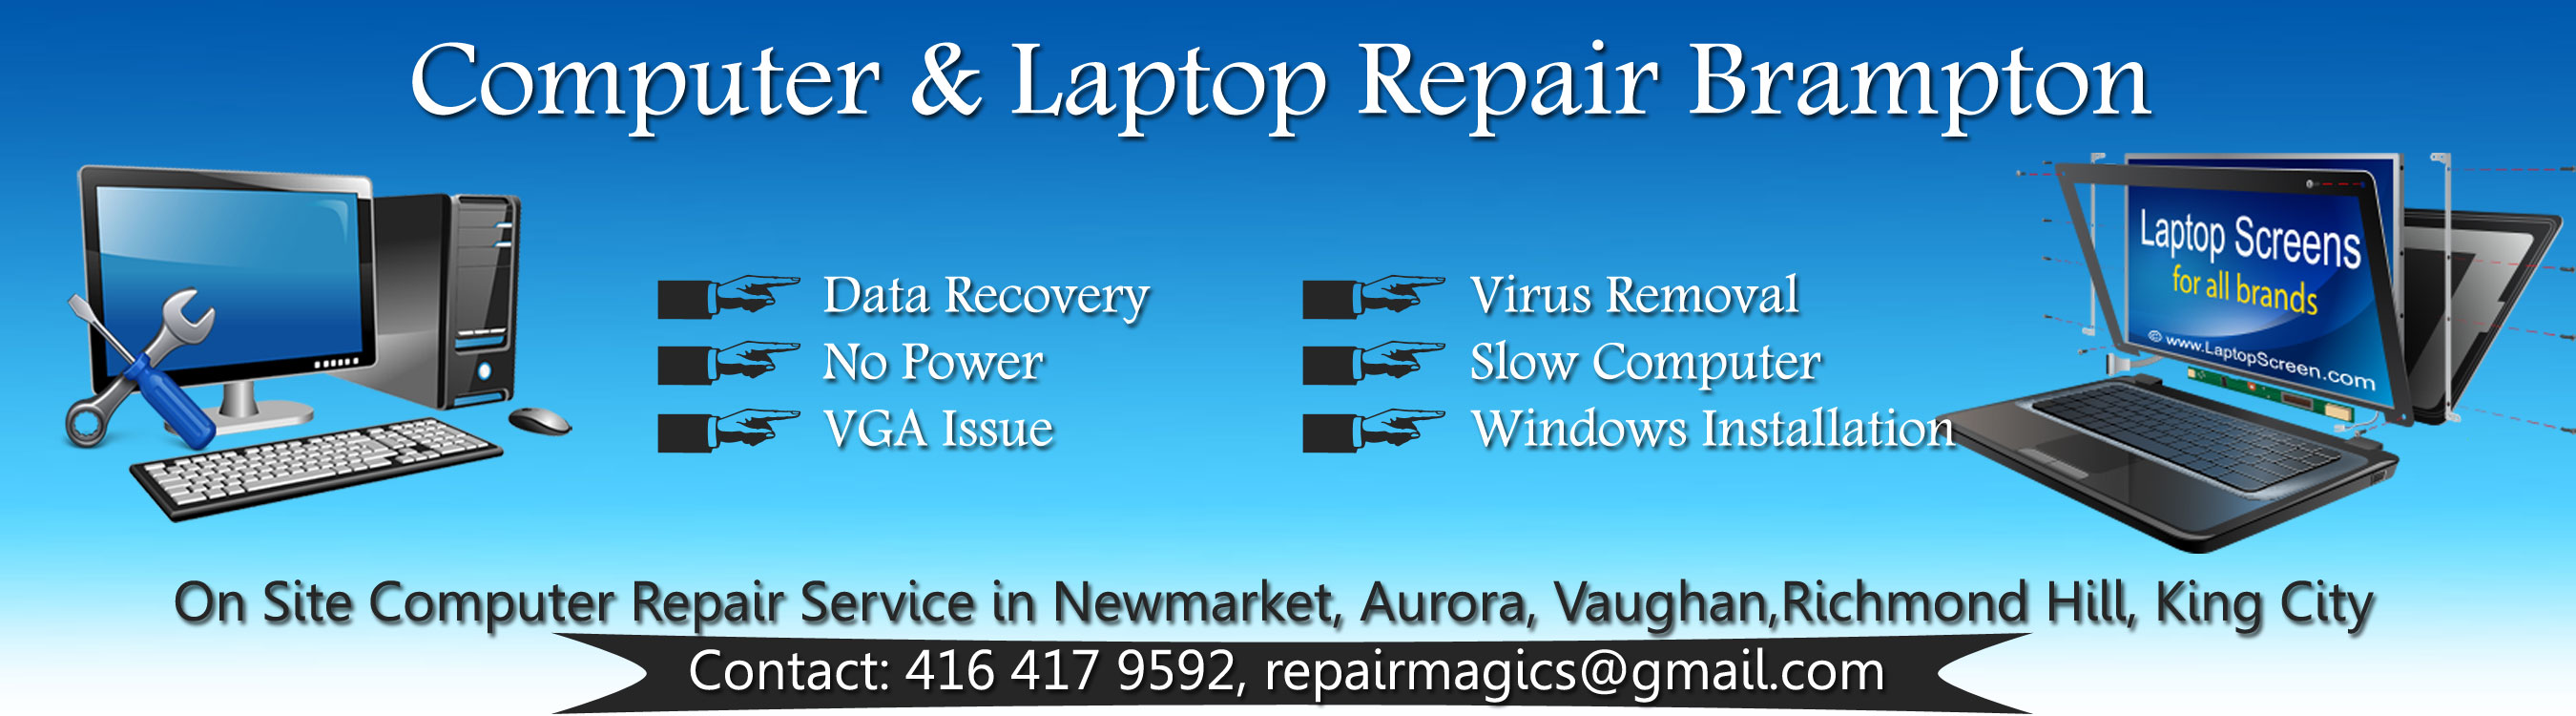 computer laptop repair brampton